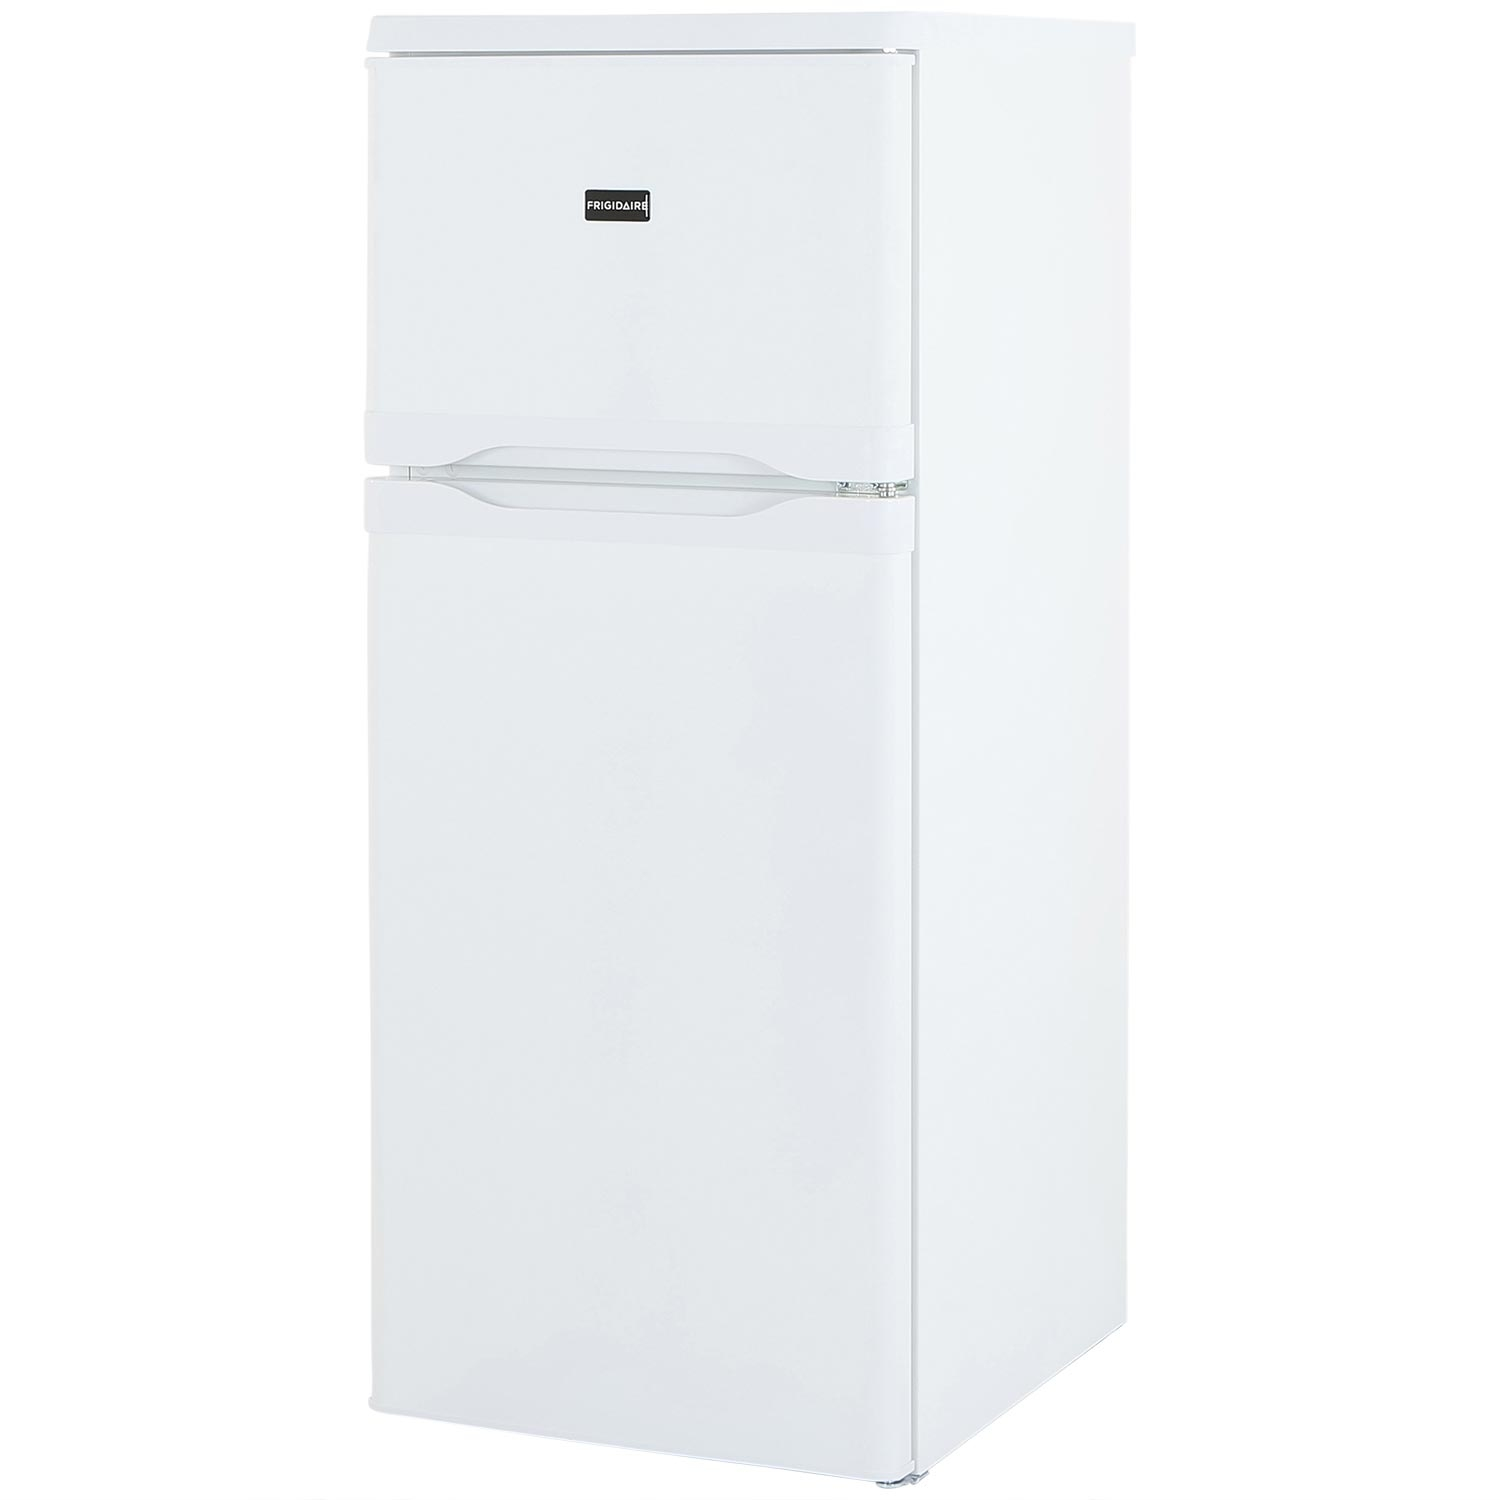 Frigidaire Compact Fridge Freezer - 2